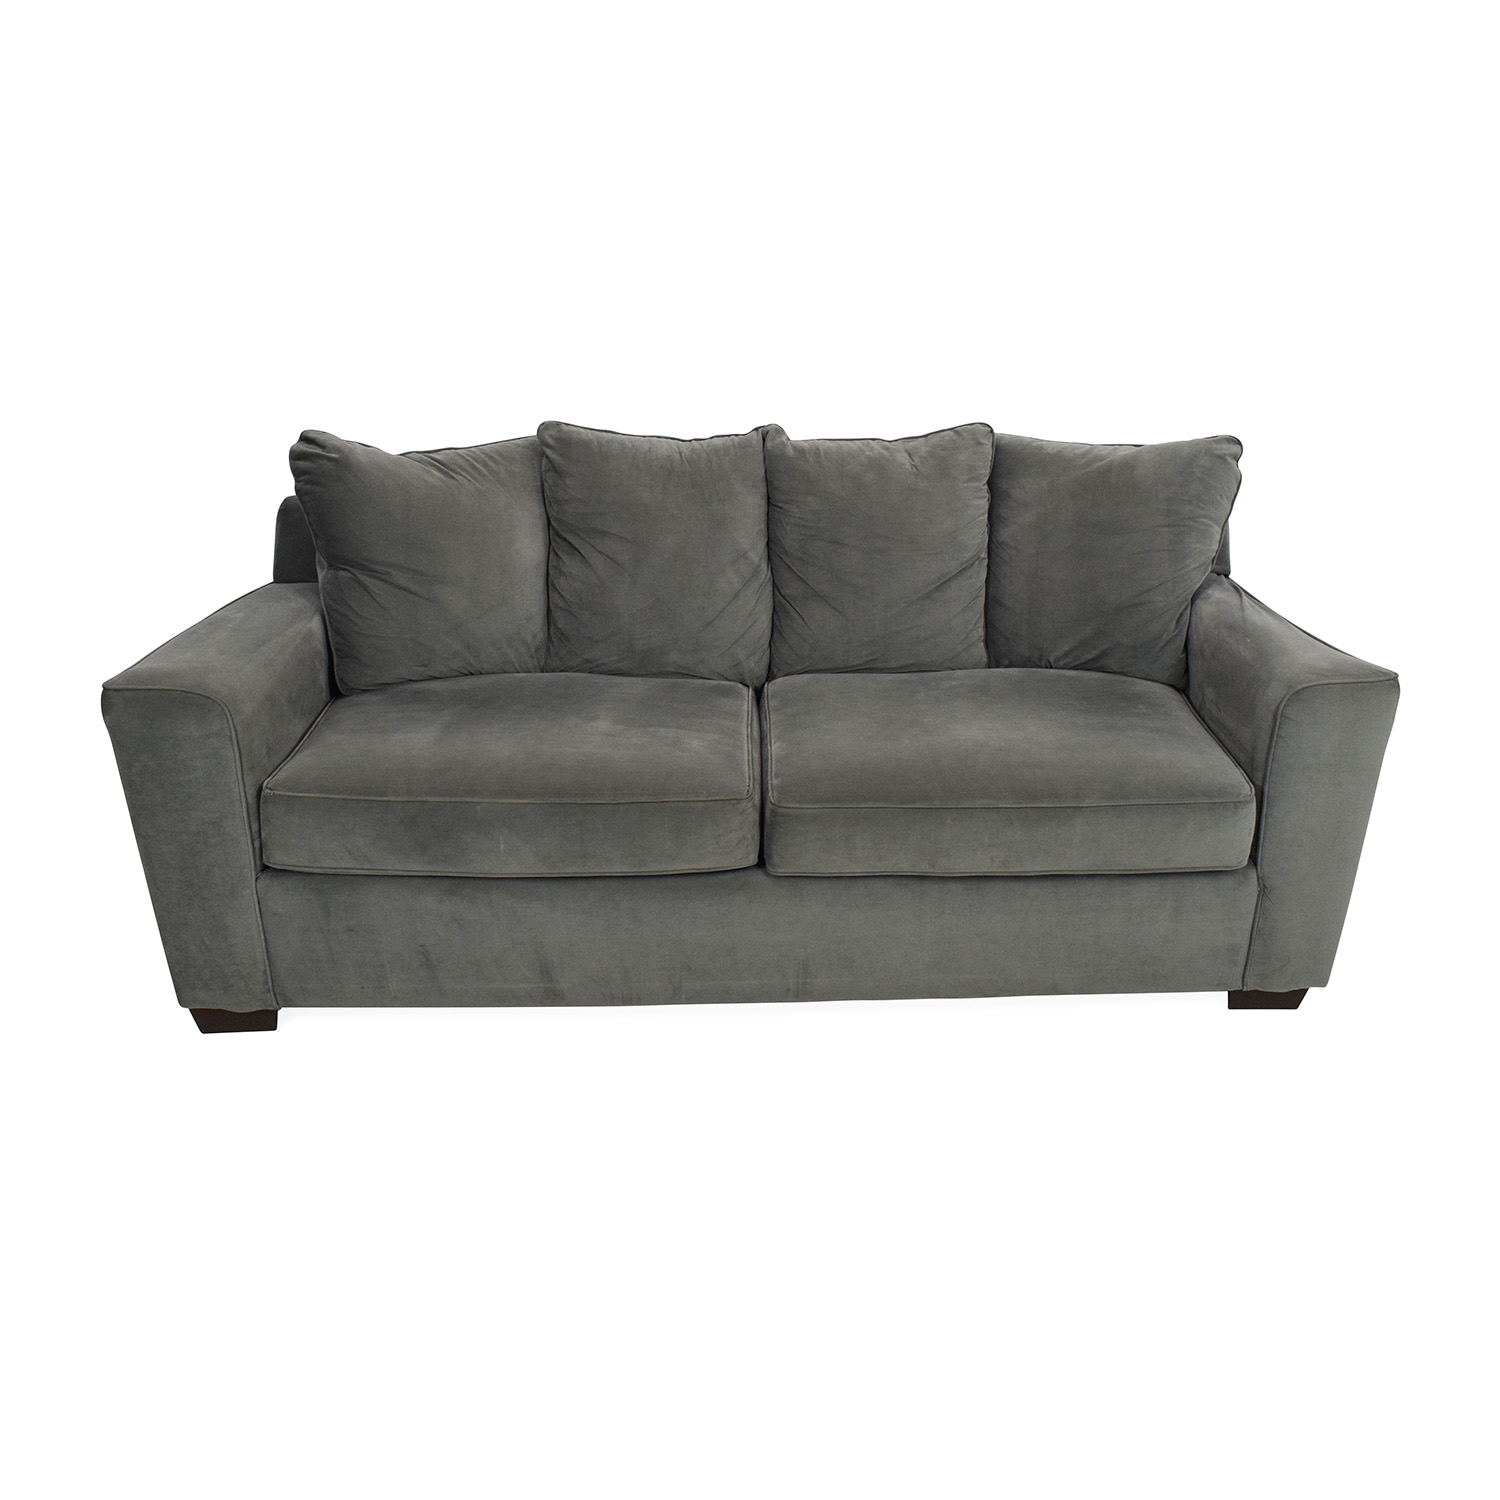 shop Jennifer Convertibles Grey Couch Jennifer Convertibles Sofas